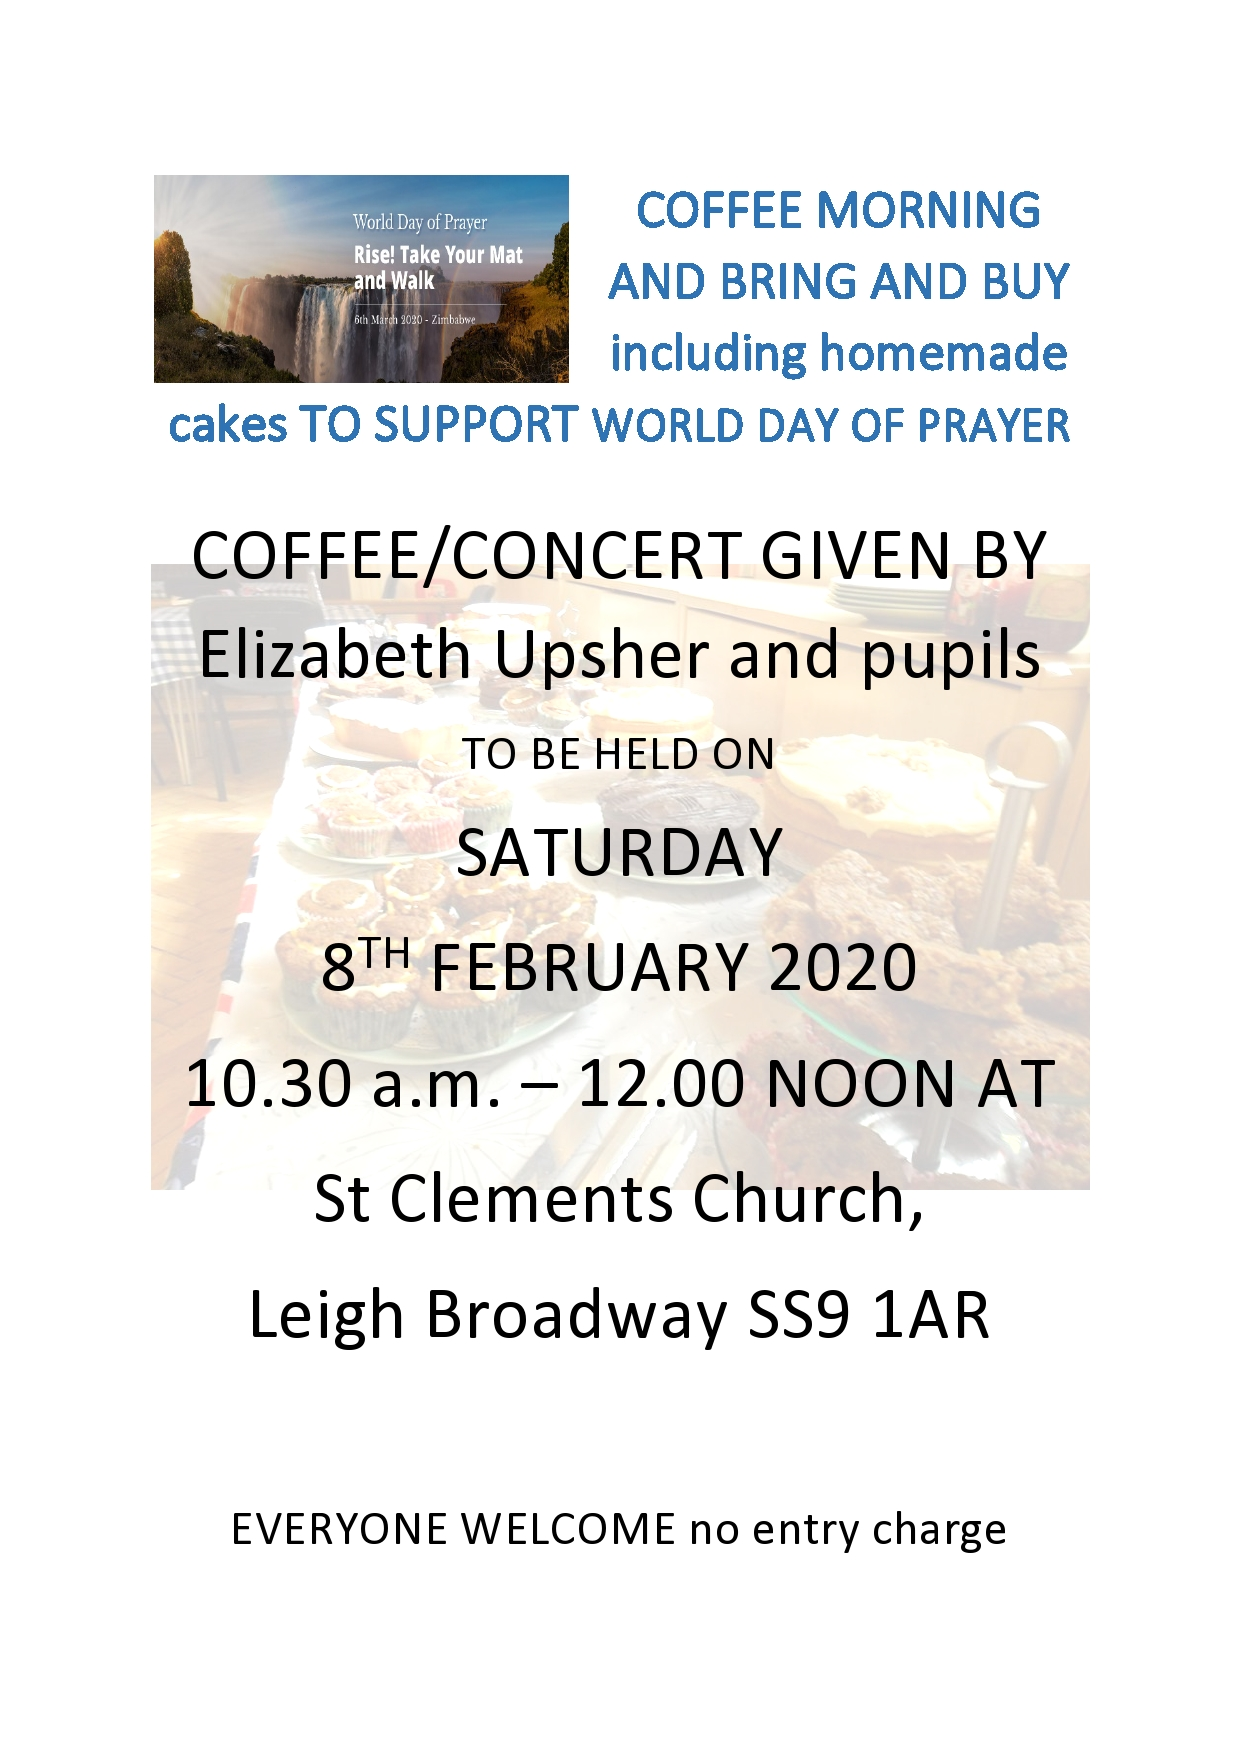 Coffee Morning, bring and buy and concert for the World Day of Prayer